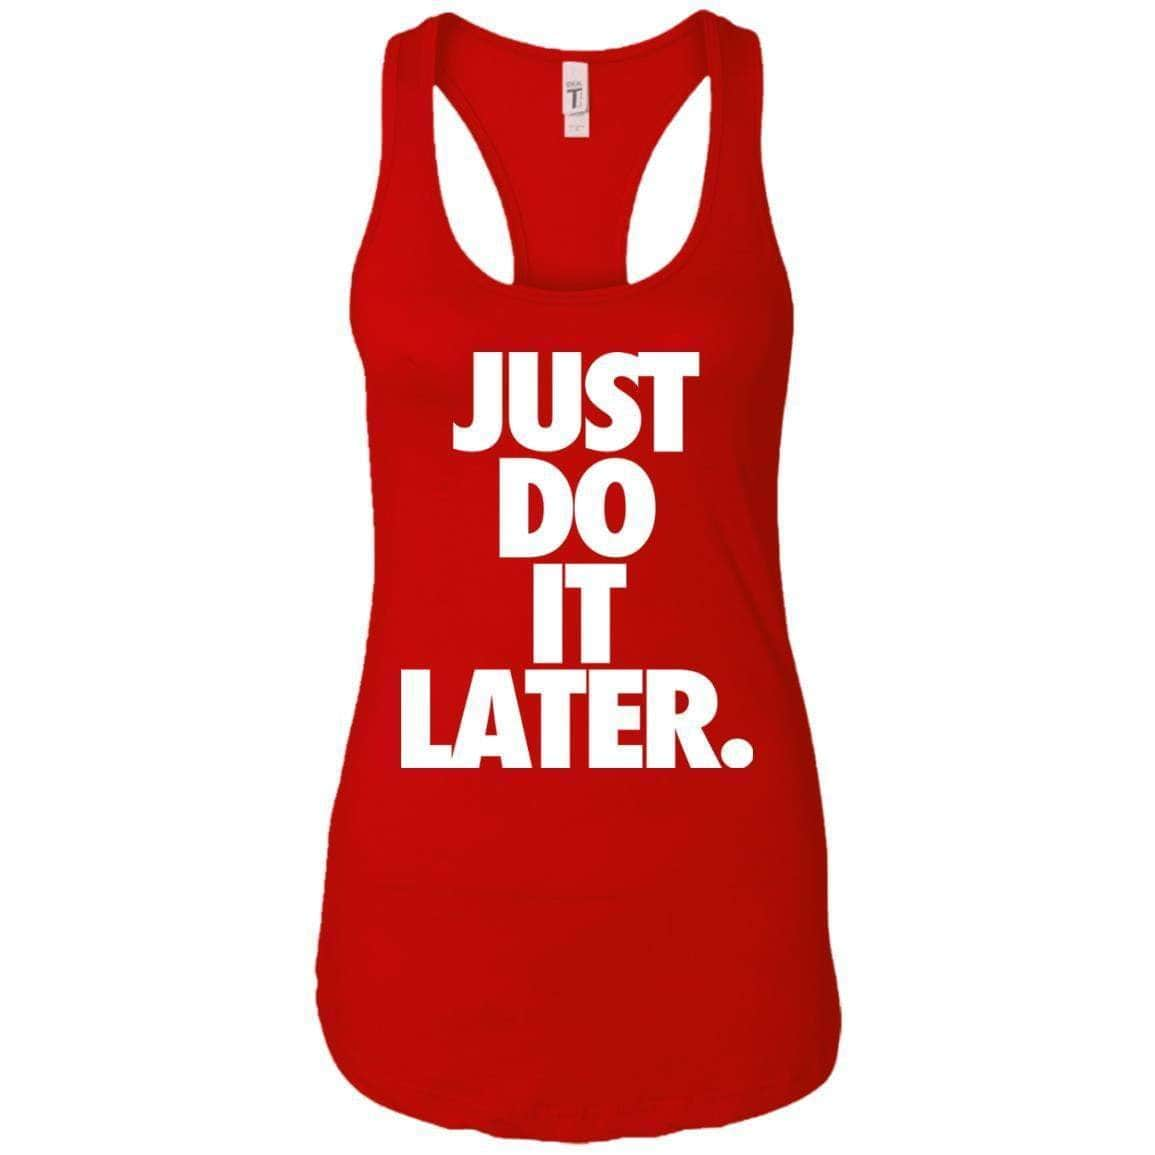 Just Do It Later Women's Racerback Tank